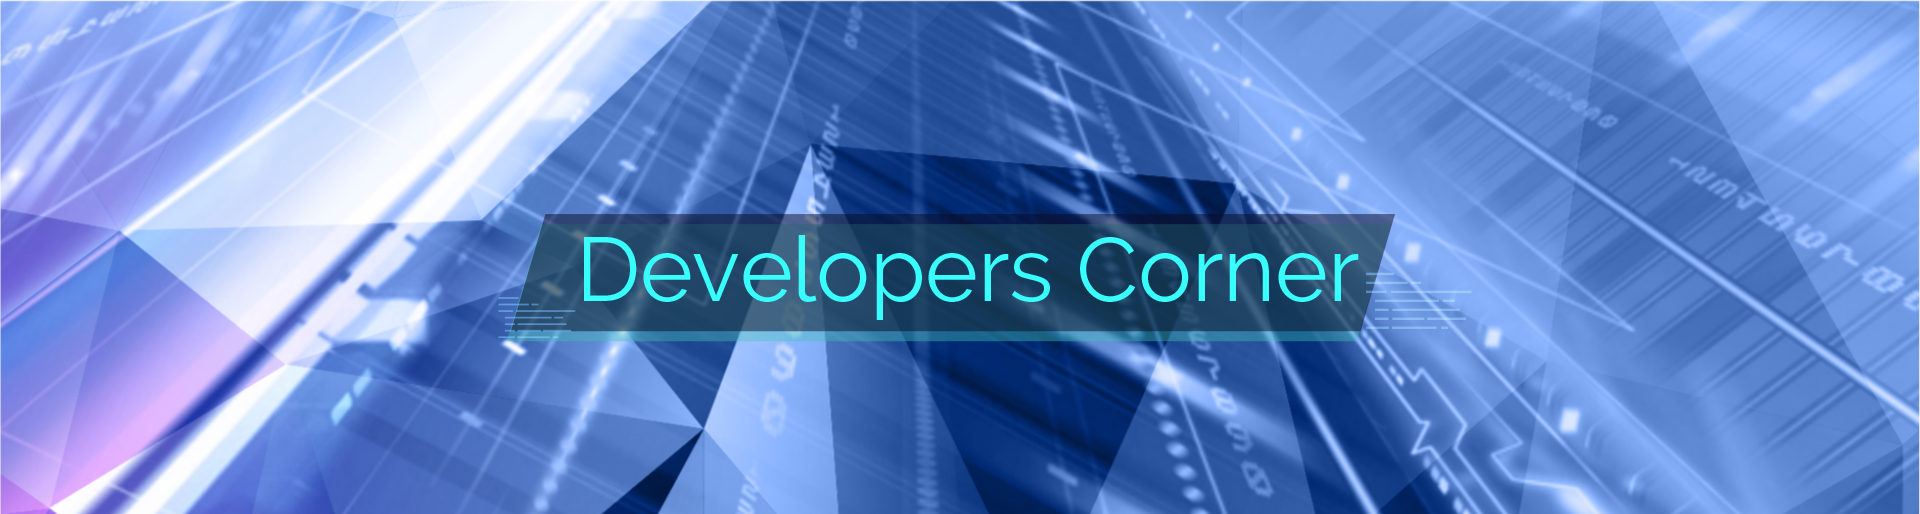 Developers Corner